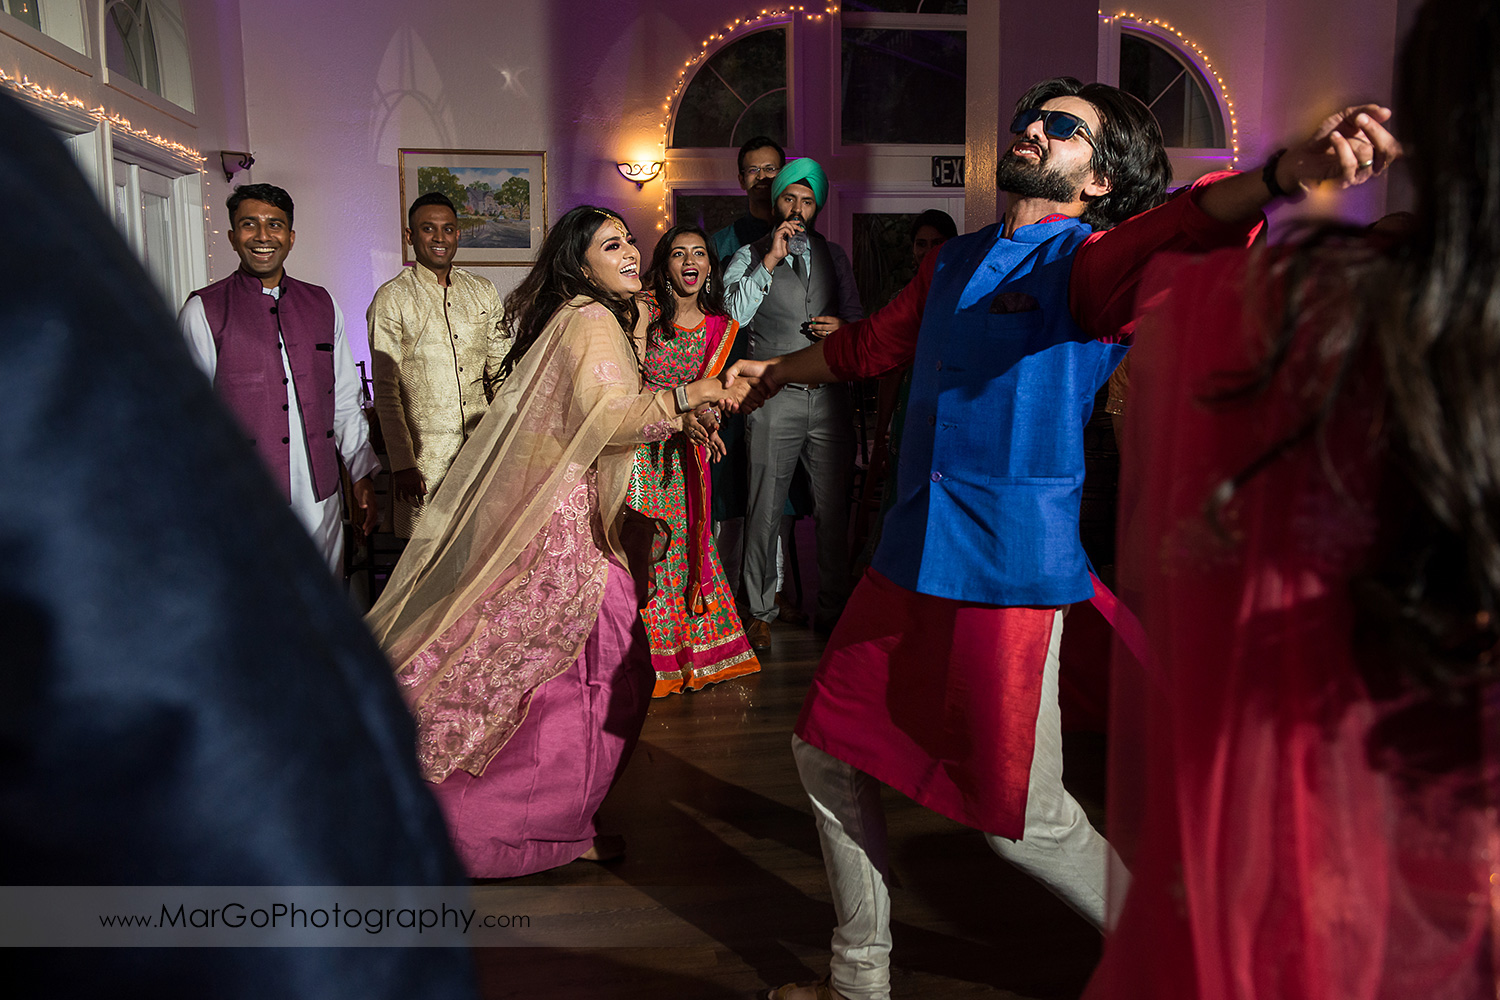 guest dancing durng Indian wedding reception at Elliston Vineyards in Sunol